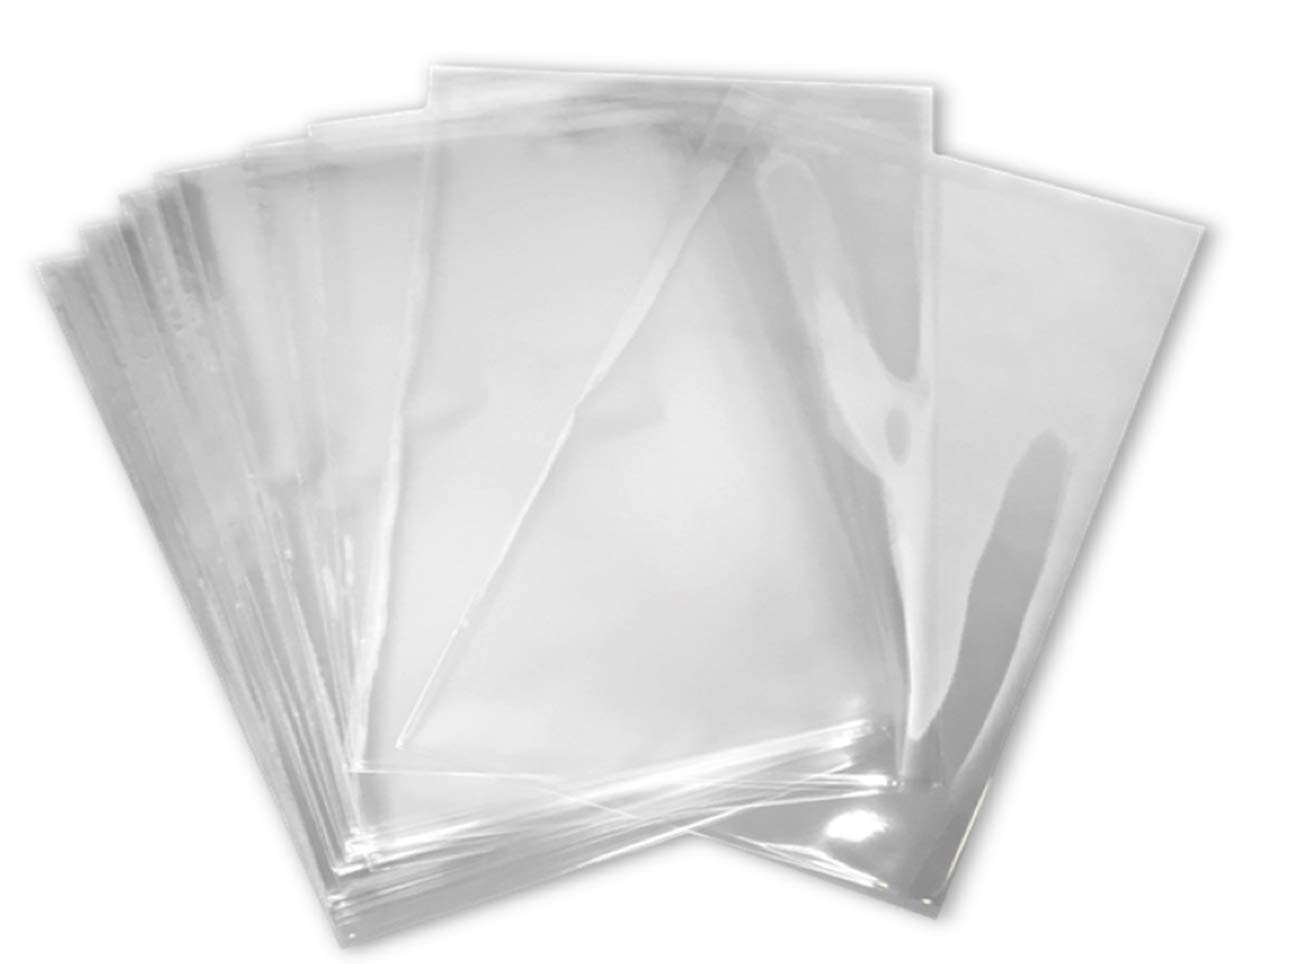 5x8 inch Odorless, Clear, 100 Guage, PVC Heat Shrink Wrap Bags for Gifts, Packagaing, Homemade DIY Projects, Bath Bombs, Soaps, and Other Merchandise (200 Pack) | MagicWater Supply